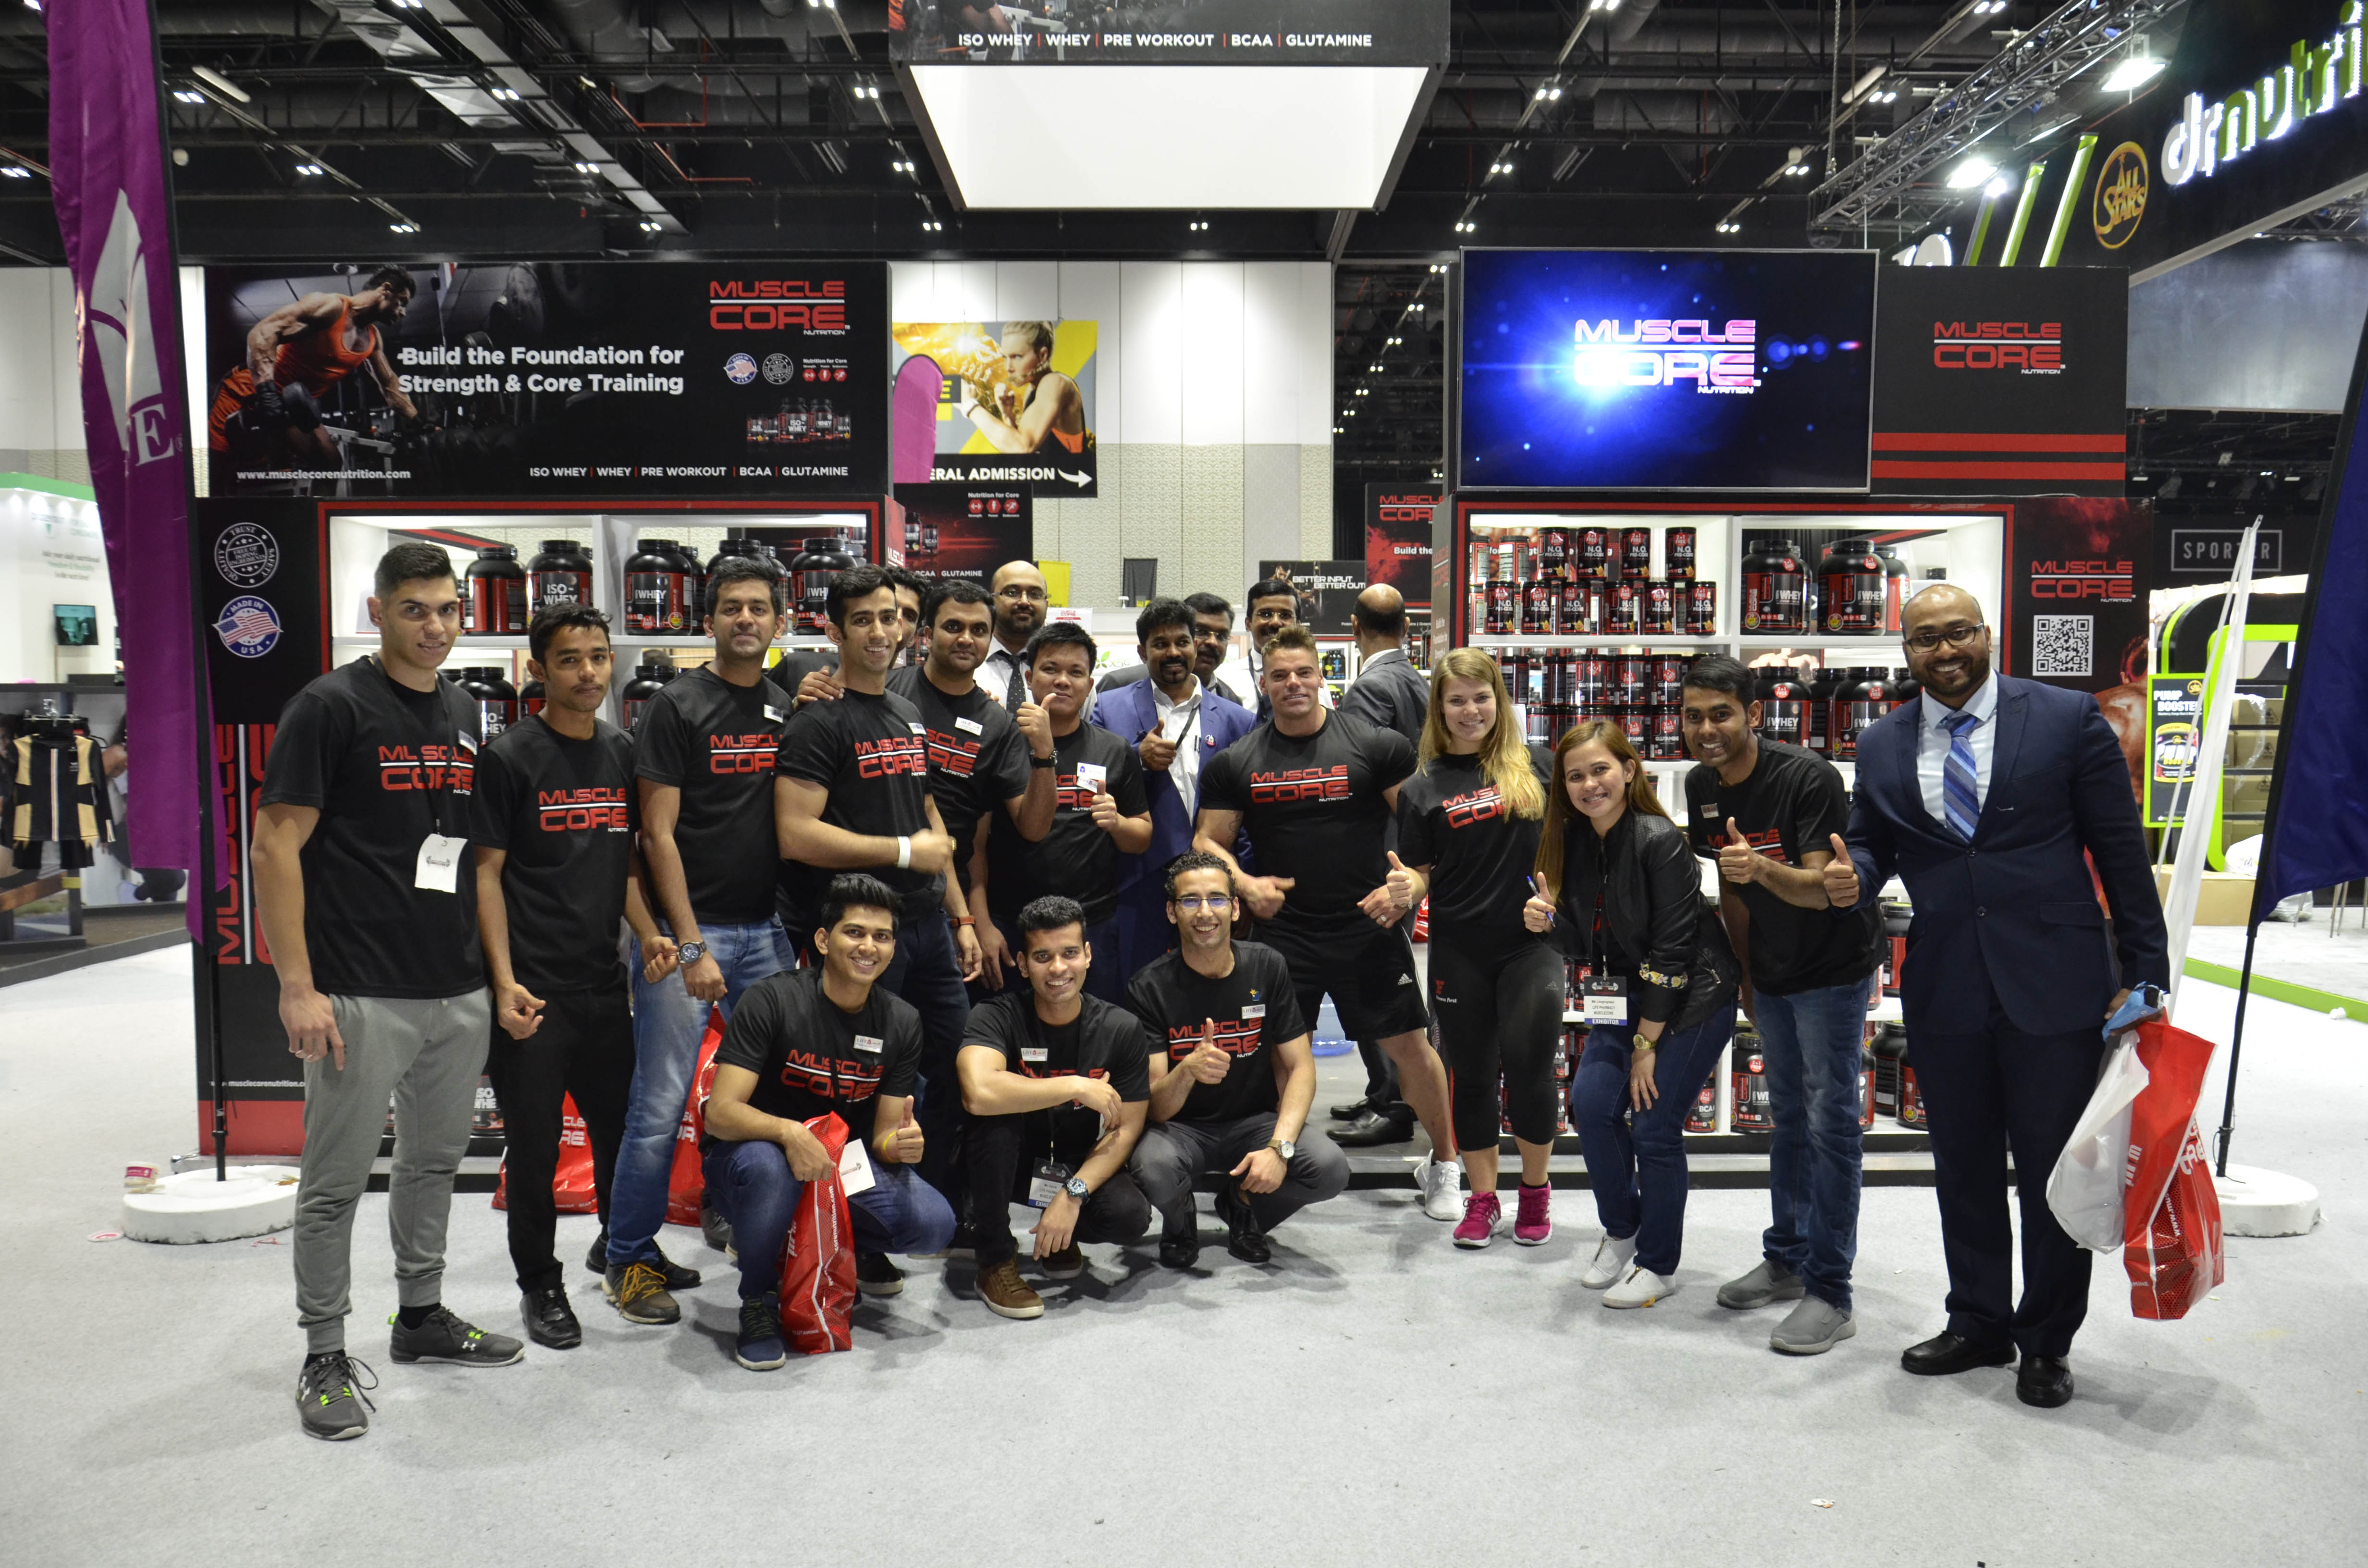 Muscle Core Team at Dubai Muscle Show